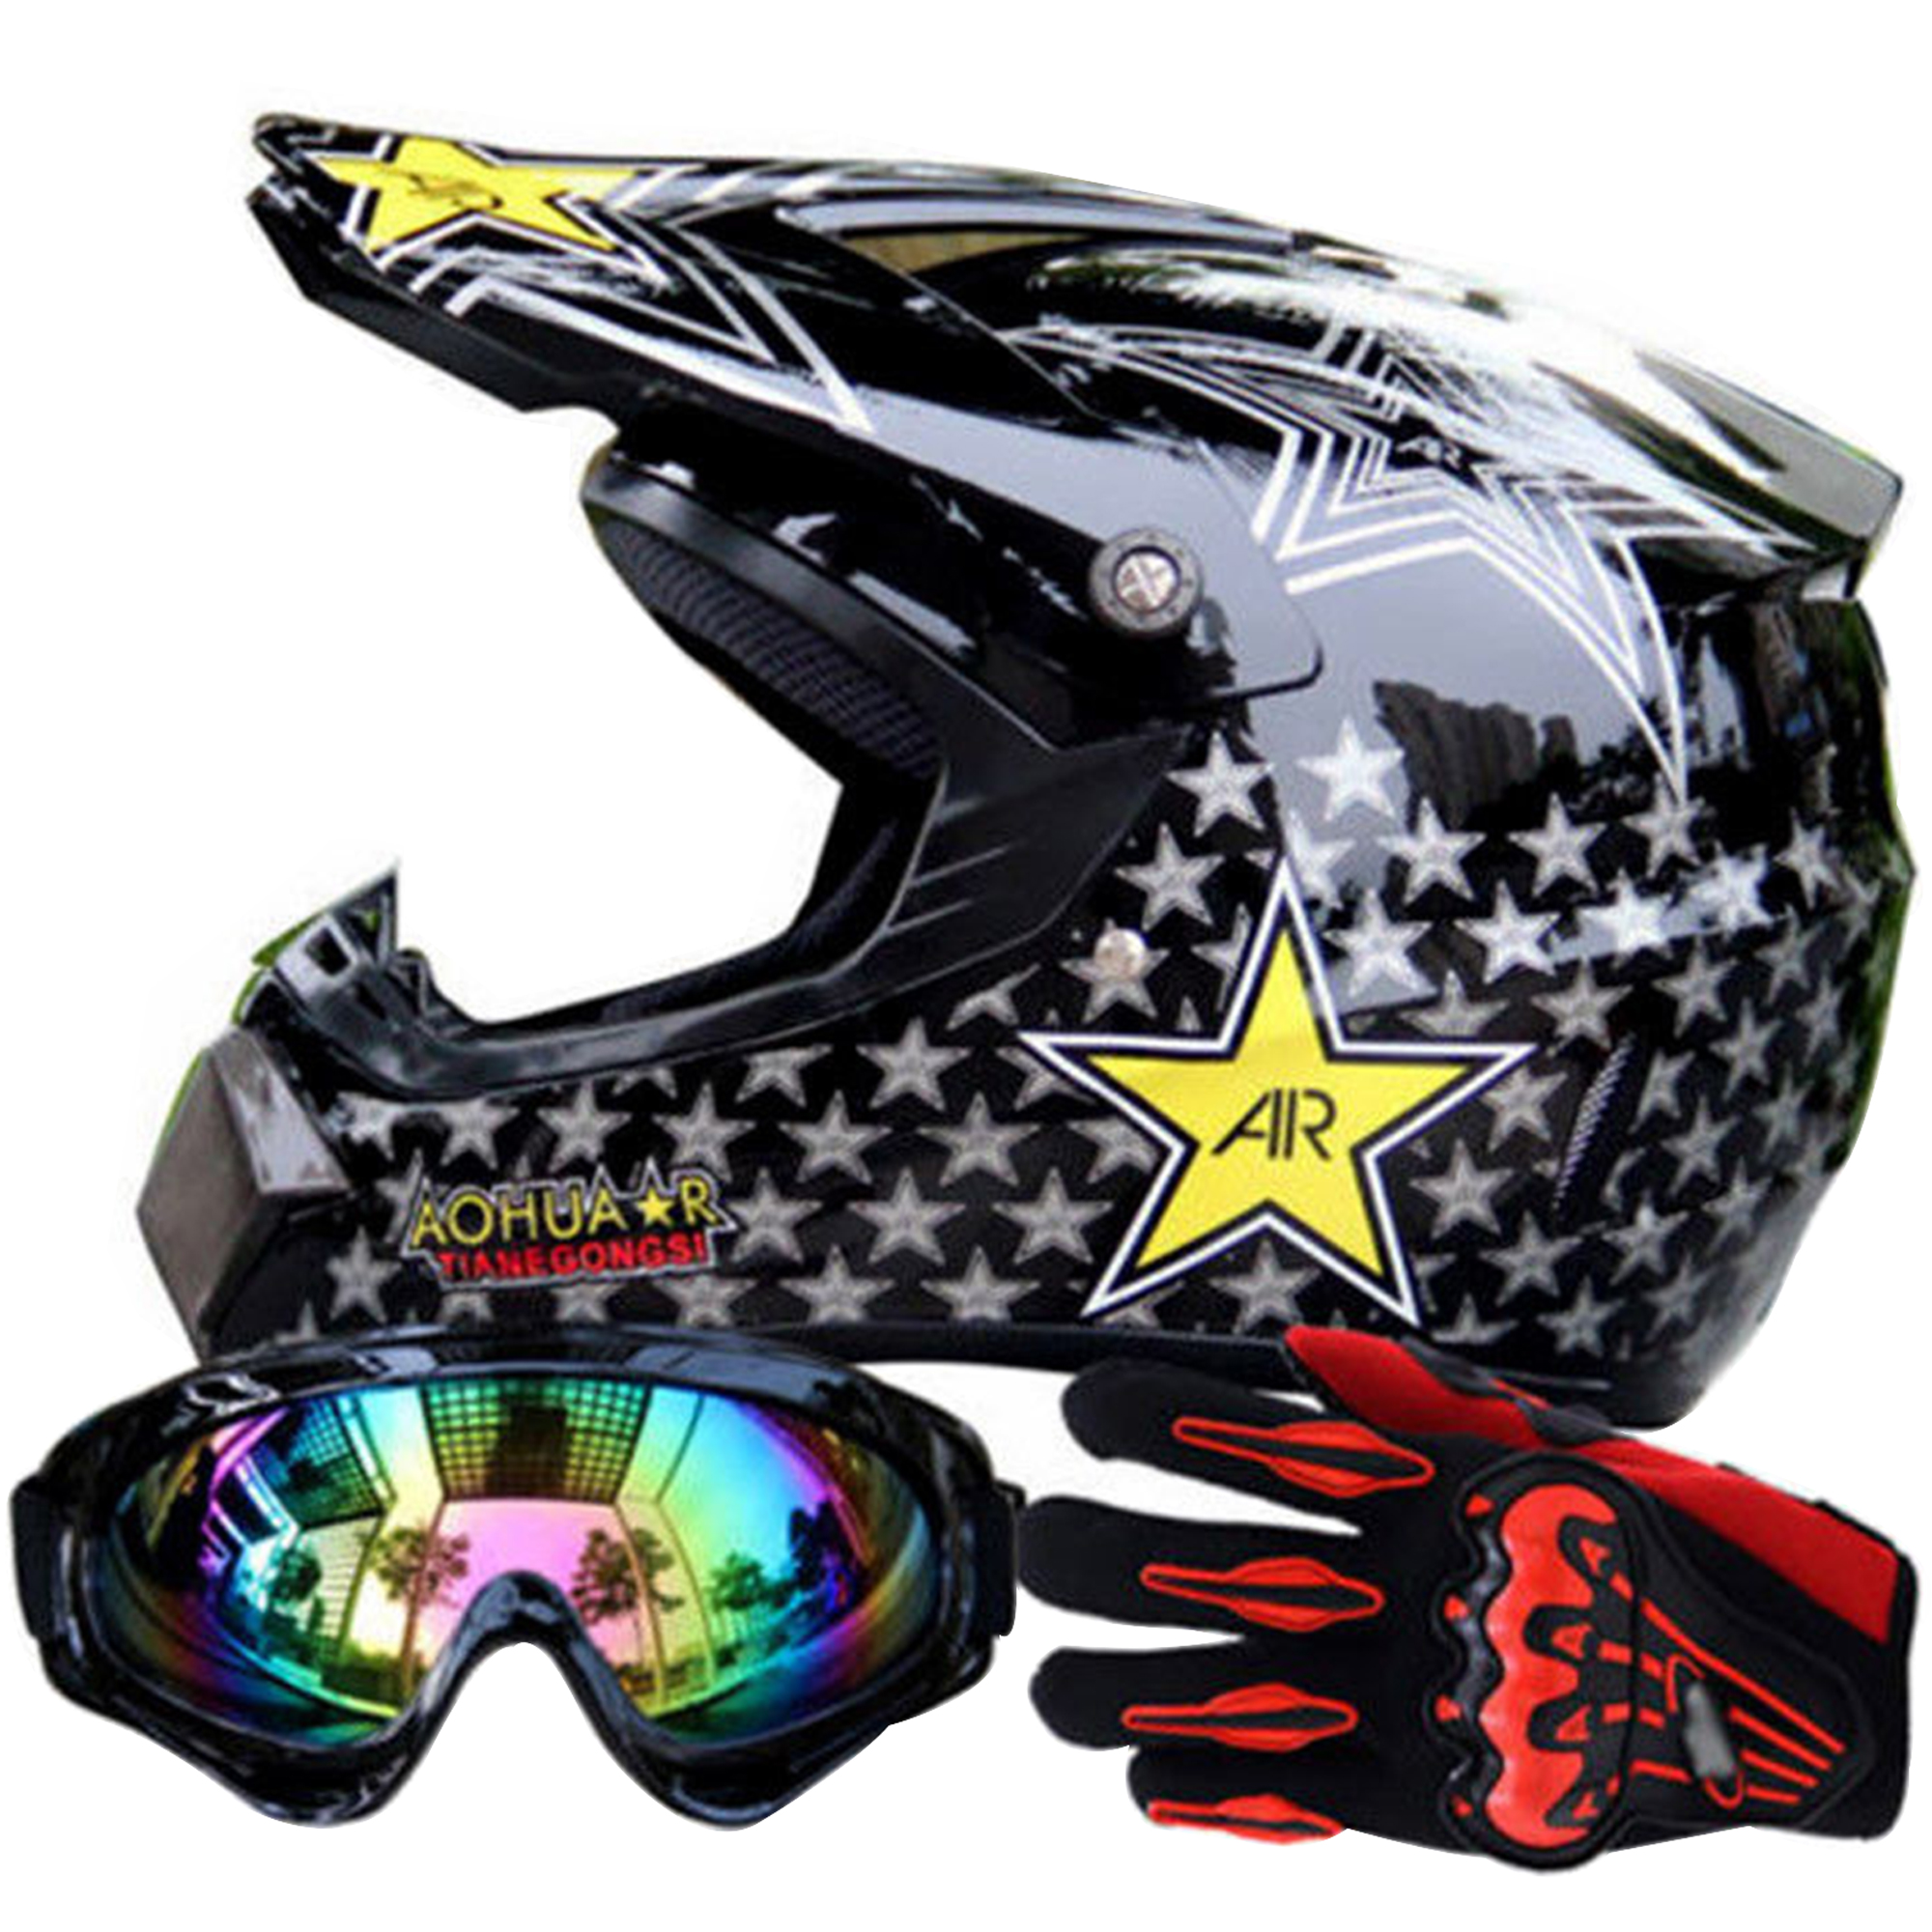 TINTON LIFE MotoCross Racing Helmet Xtreme Sports Off Road for ATV Dirt Bike Helmet With Goggles And Gloves, color3